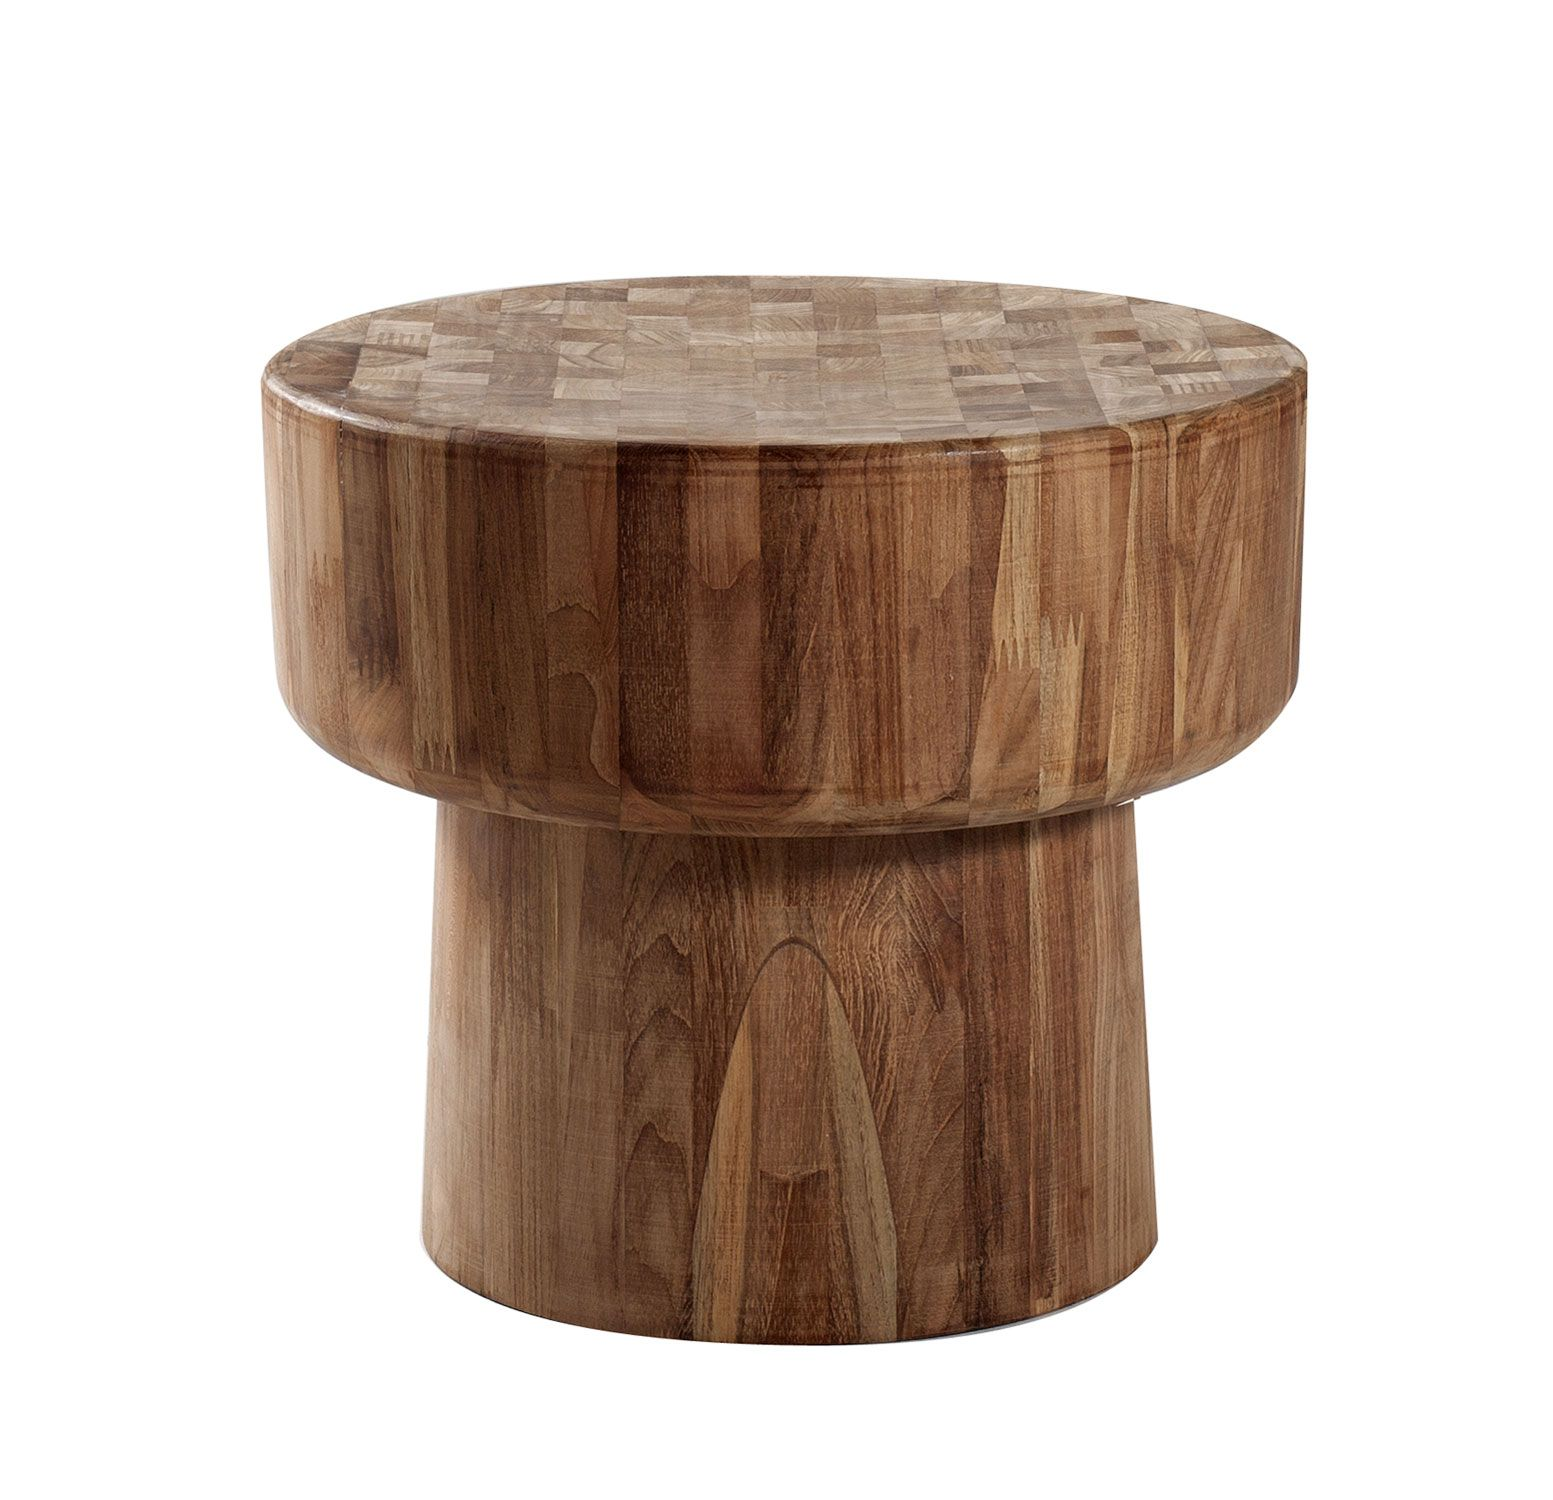 Traditional Solid Wood Narrow End Table For Wood Table furniture